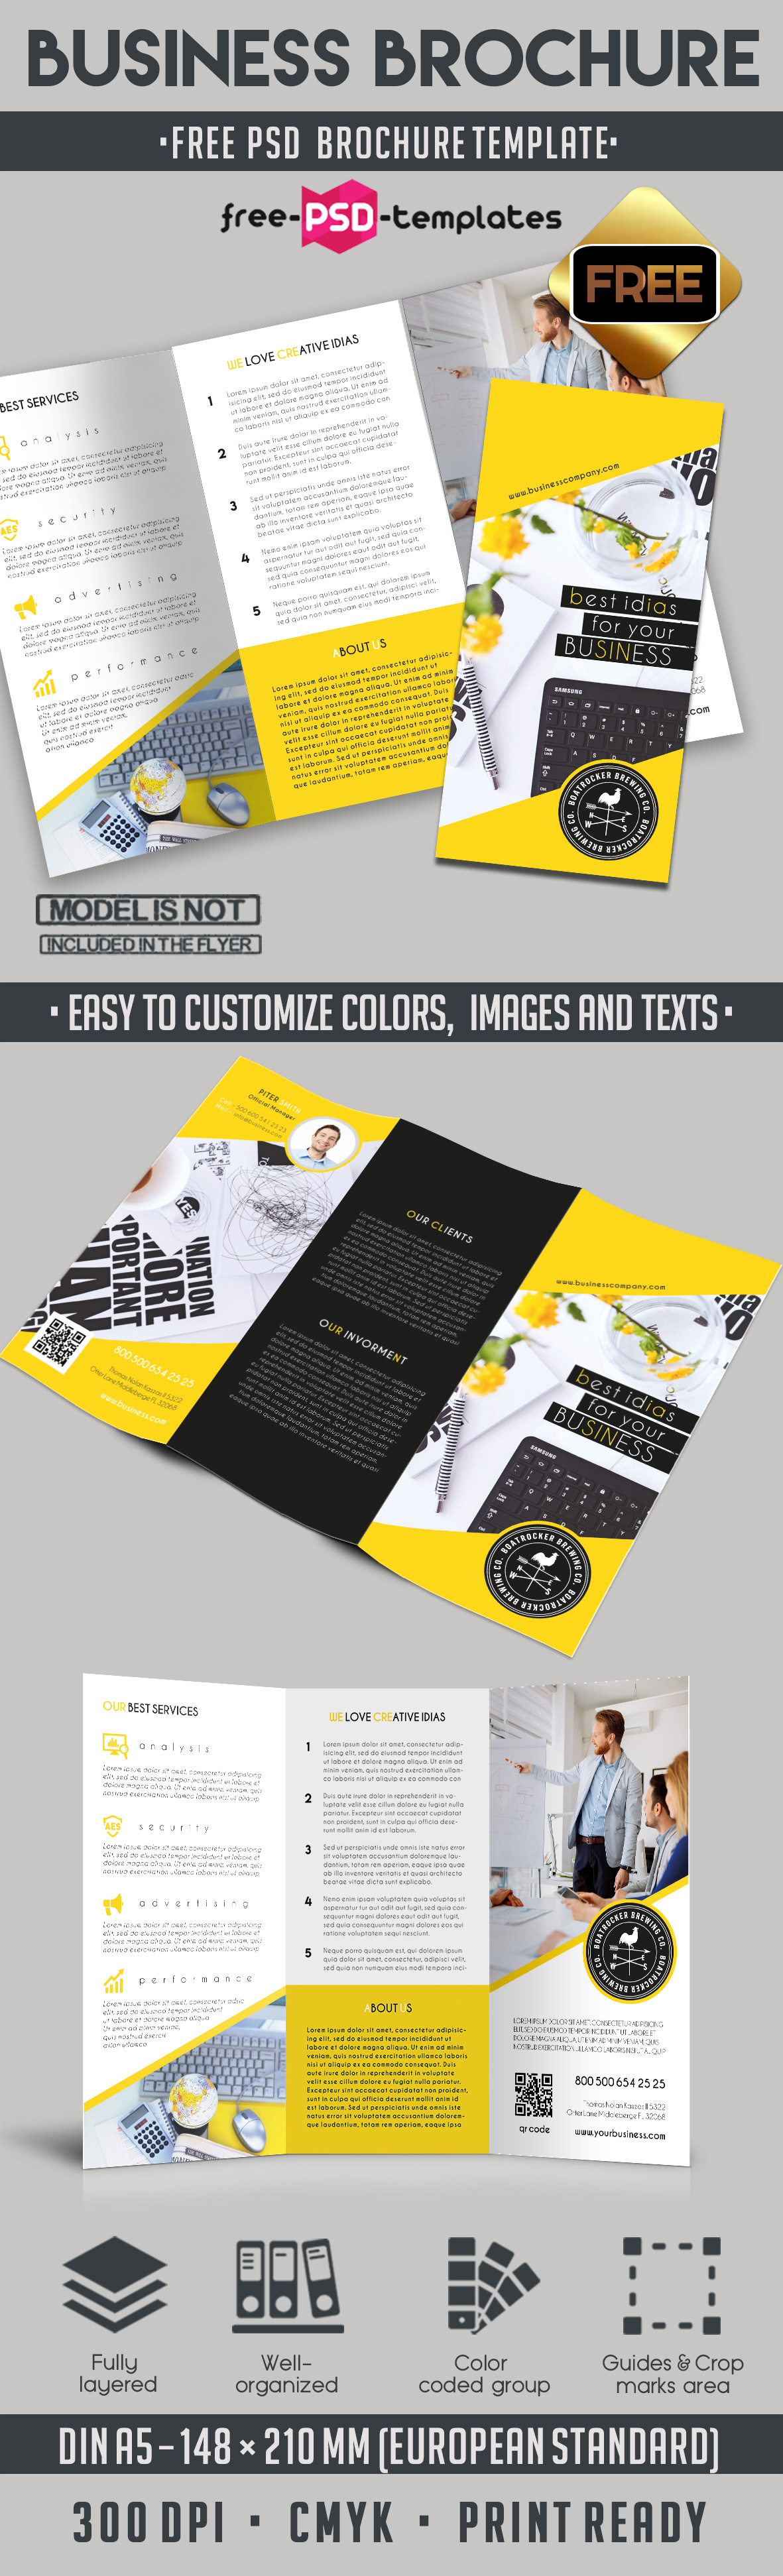 Free business tri fold brochure psd template free psd for Free business brochures templates